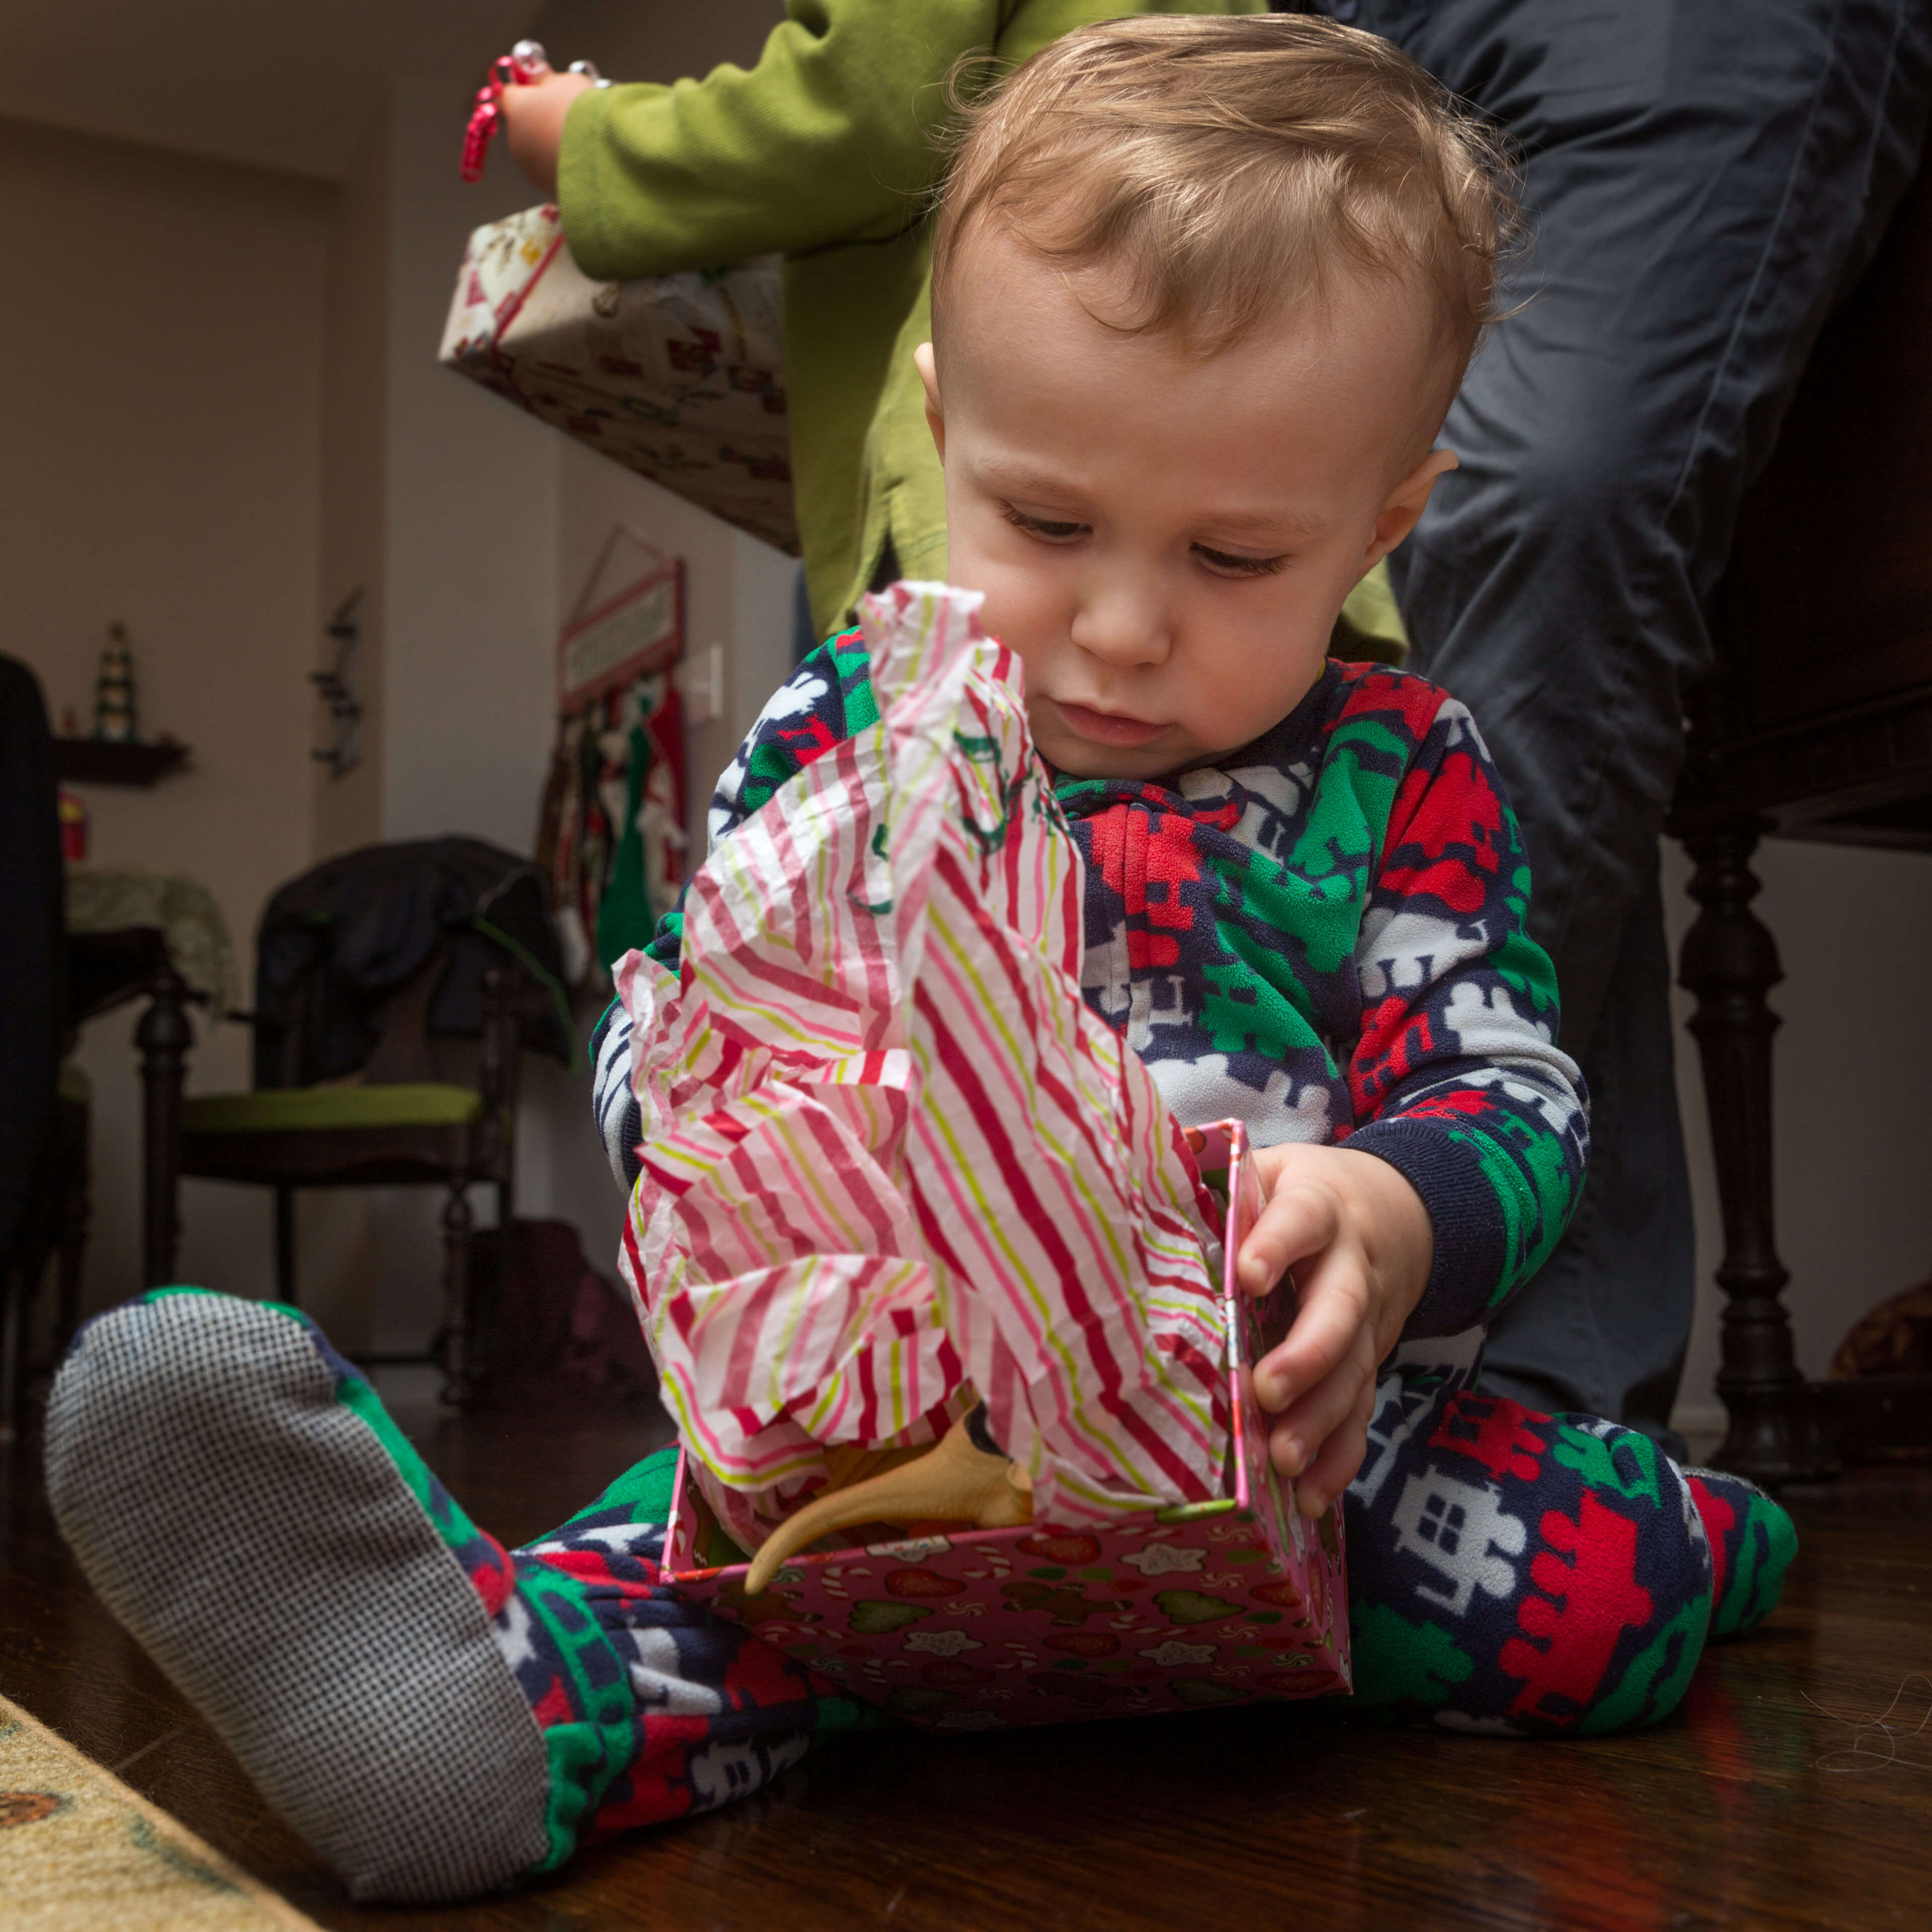 Christmas from a child's perspective. With the camera resting on the floor, the autofocus nailed it.